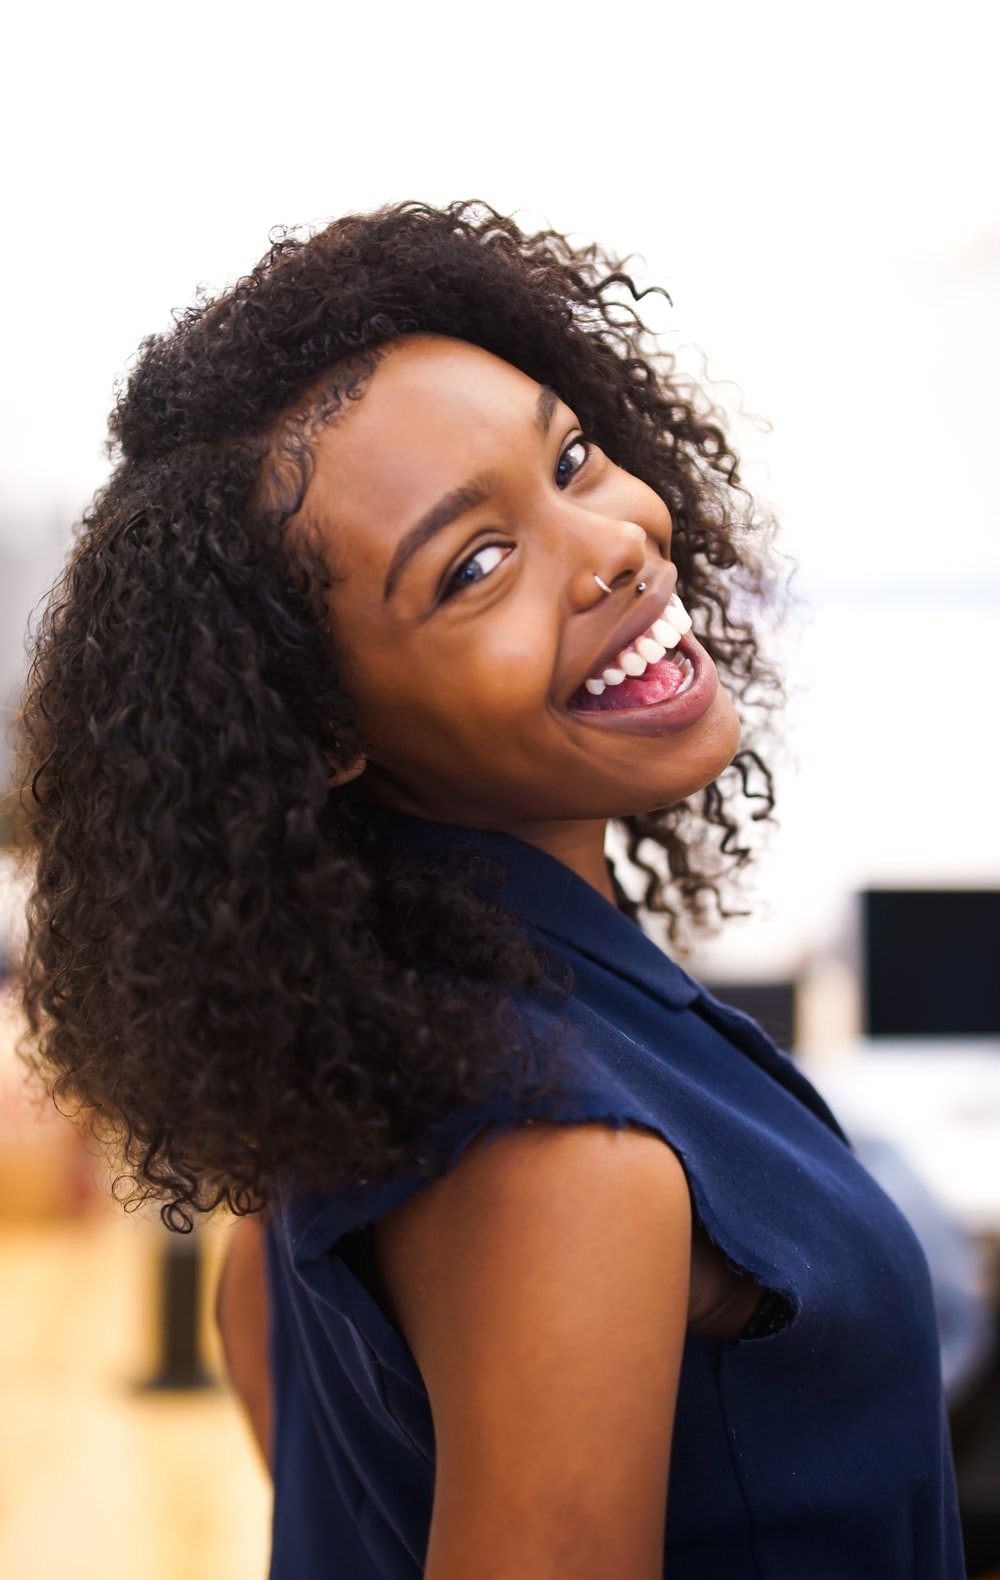 woman looking back while smiling